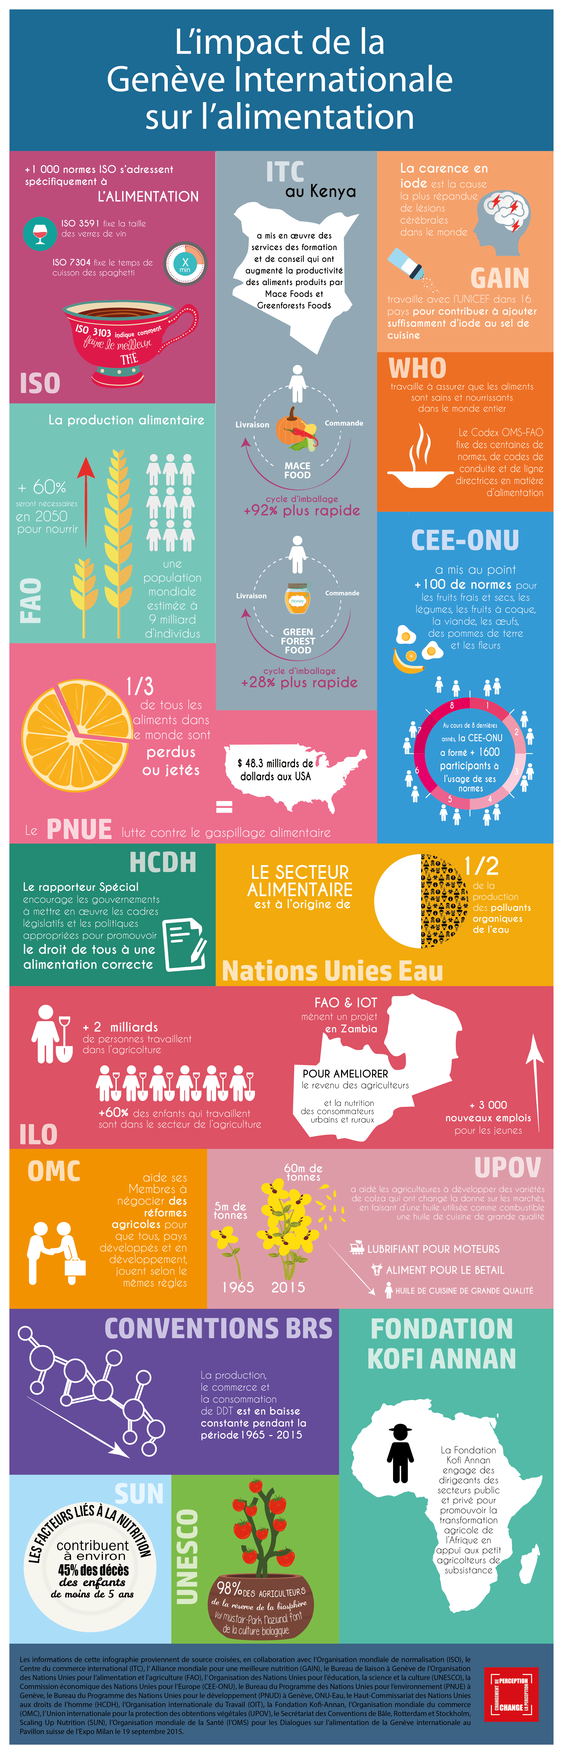 2015-10-22-1445524917-2706338-foodinfographic_2_FR011.png